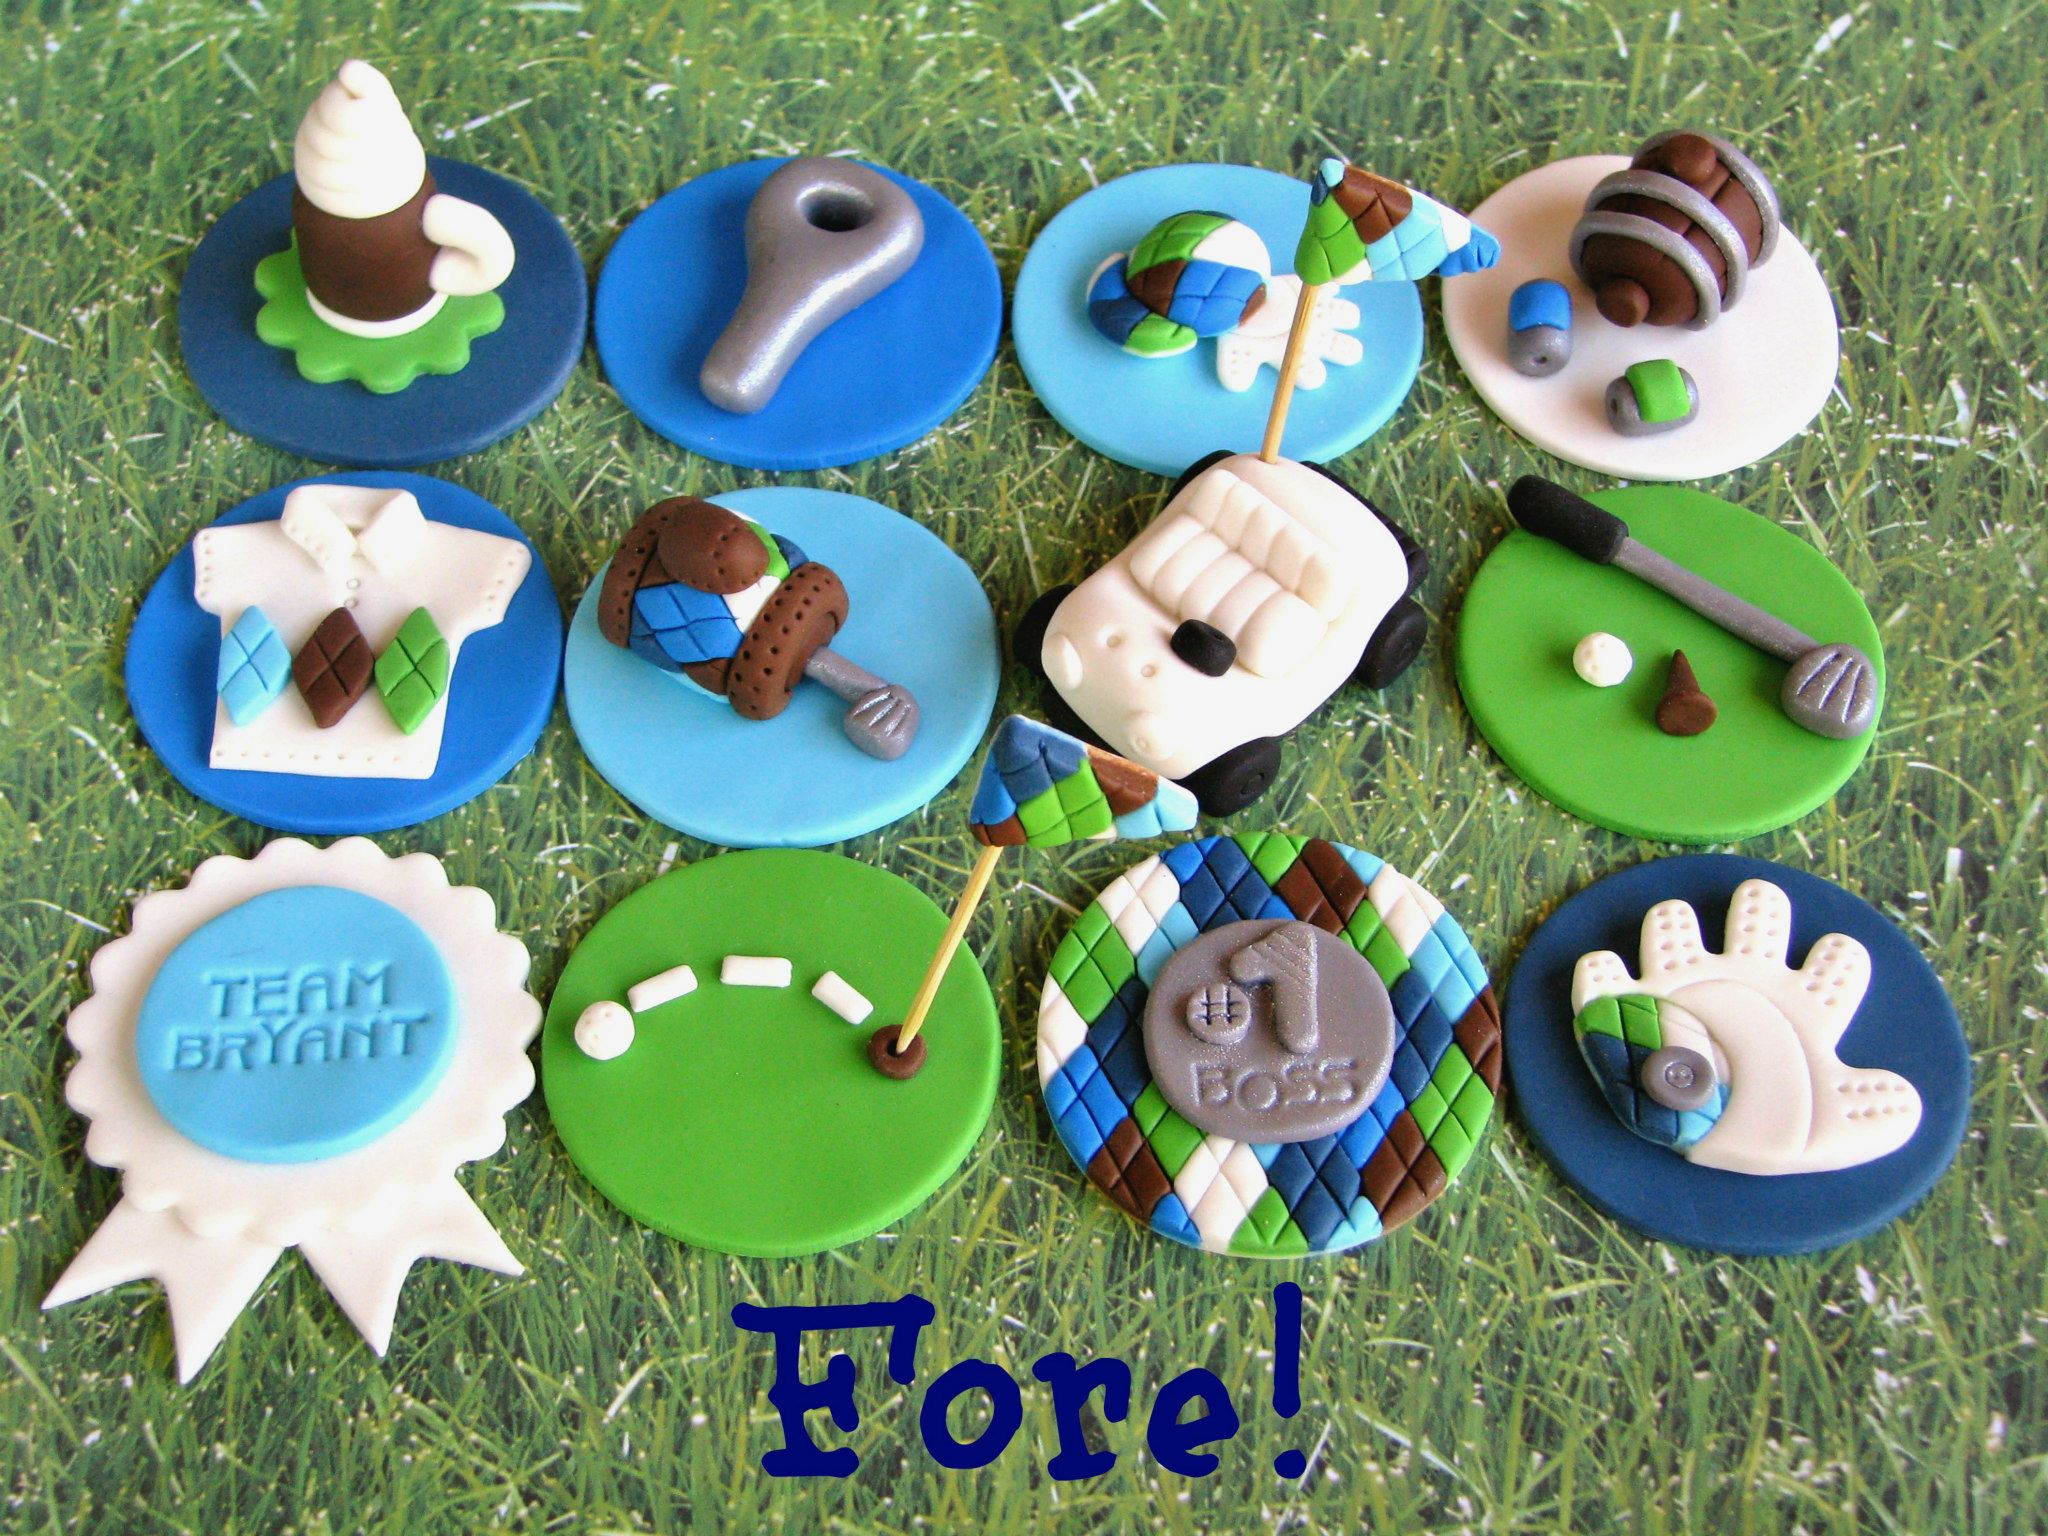 Collection of Golf-Themed Cake Toppers